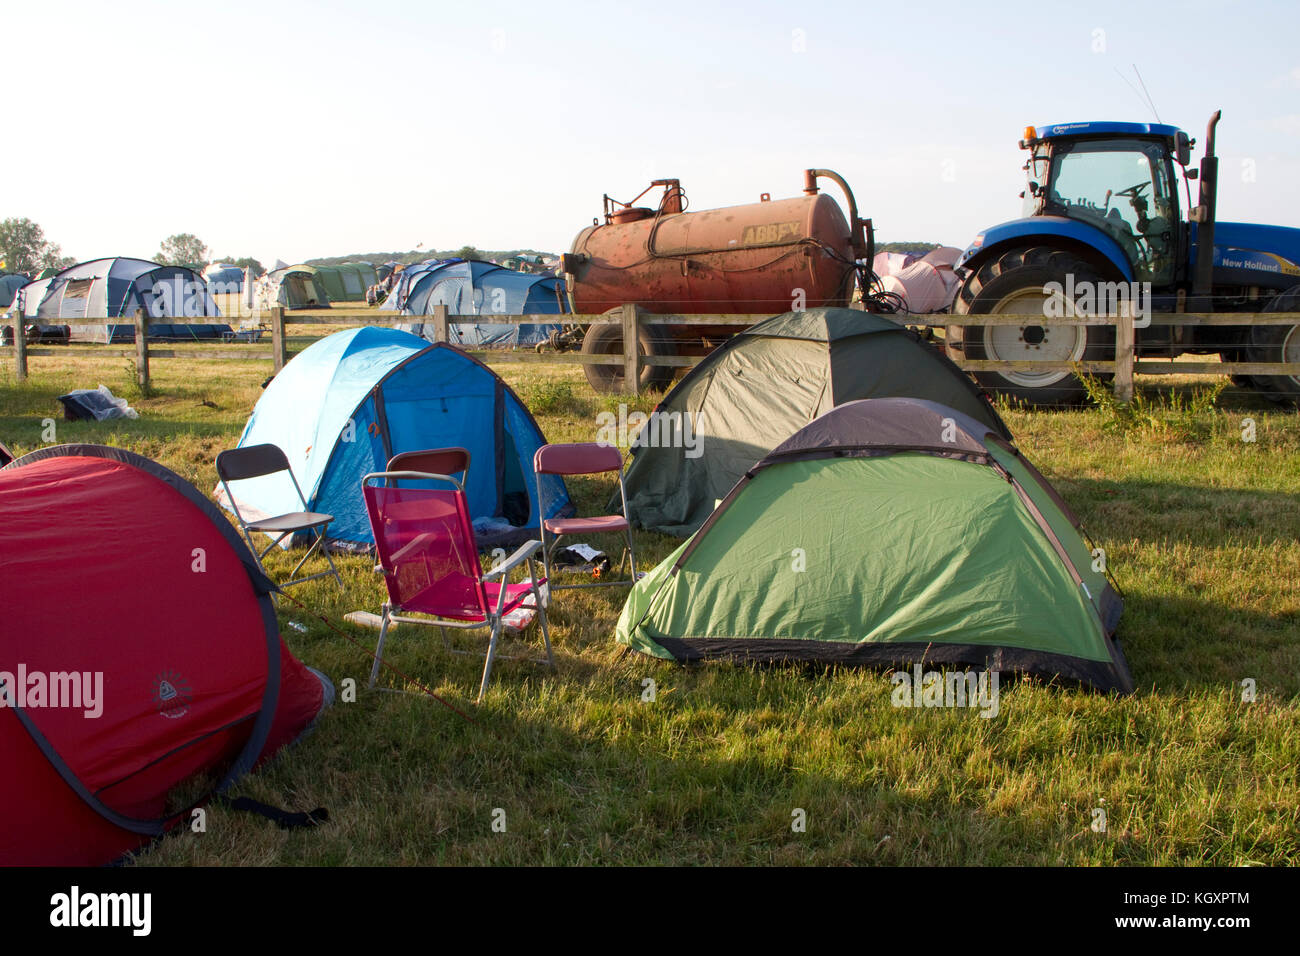 Tents at a music festival with a tractor and tanker in the background - Stock Image